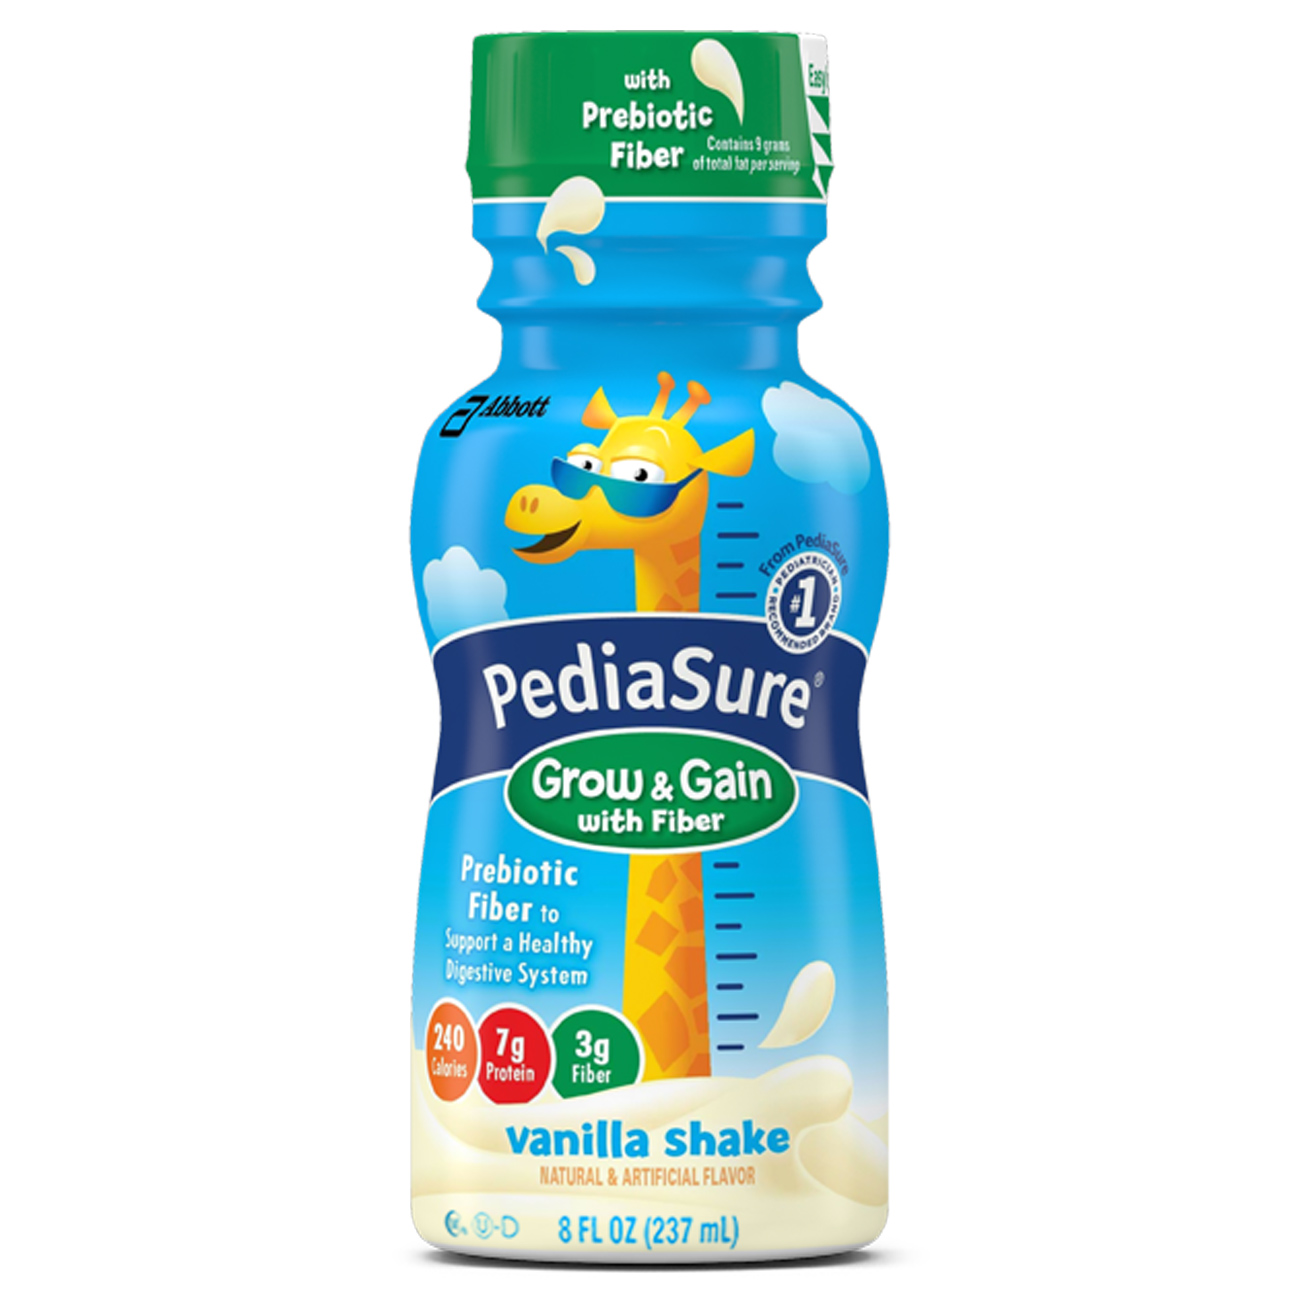 PediaSure Grow & Gain Nutrition Drink with Fiber, Vanilla Shake, 8 fl oz (Pack of 6)